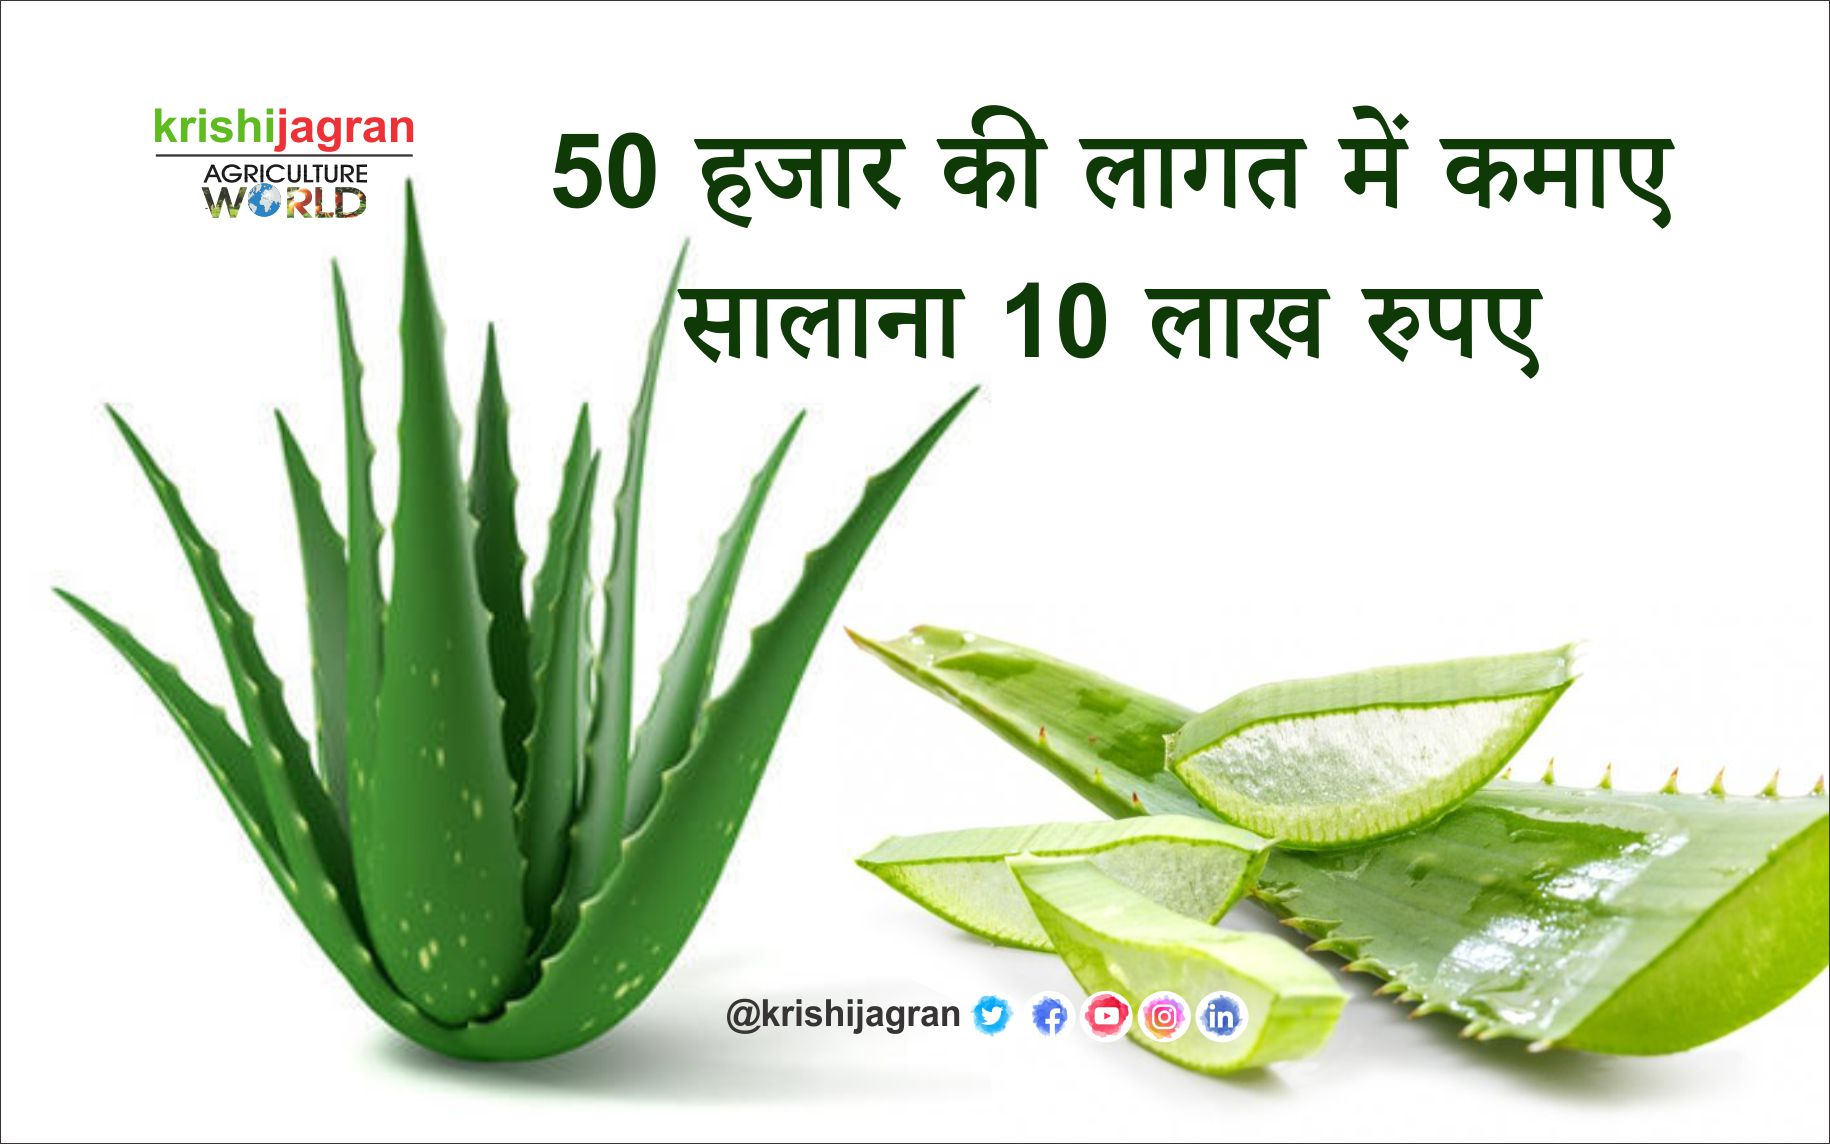 The cultivation of this medicinal plant earns Rs. 10 lakhs annually in the cost of 50 thousand rupees